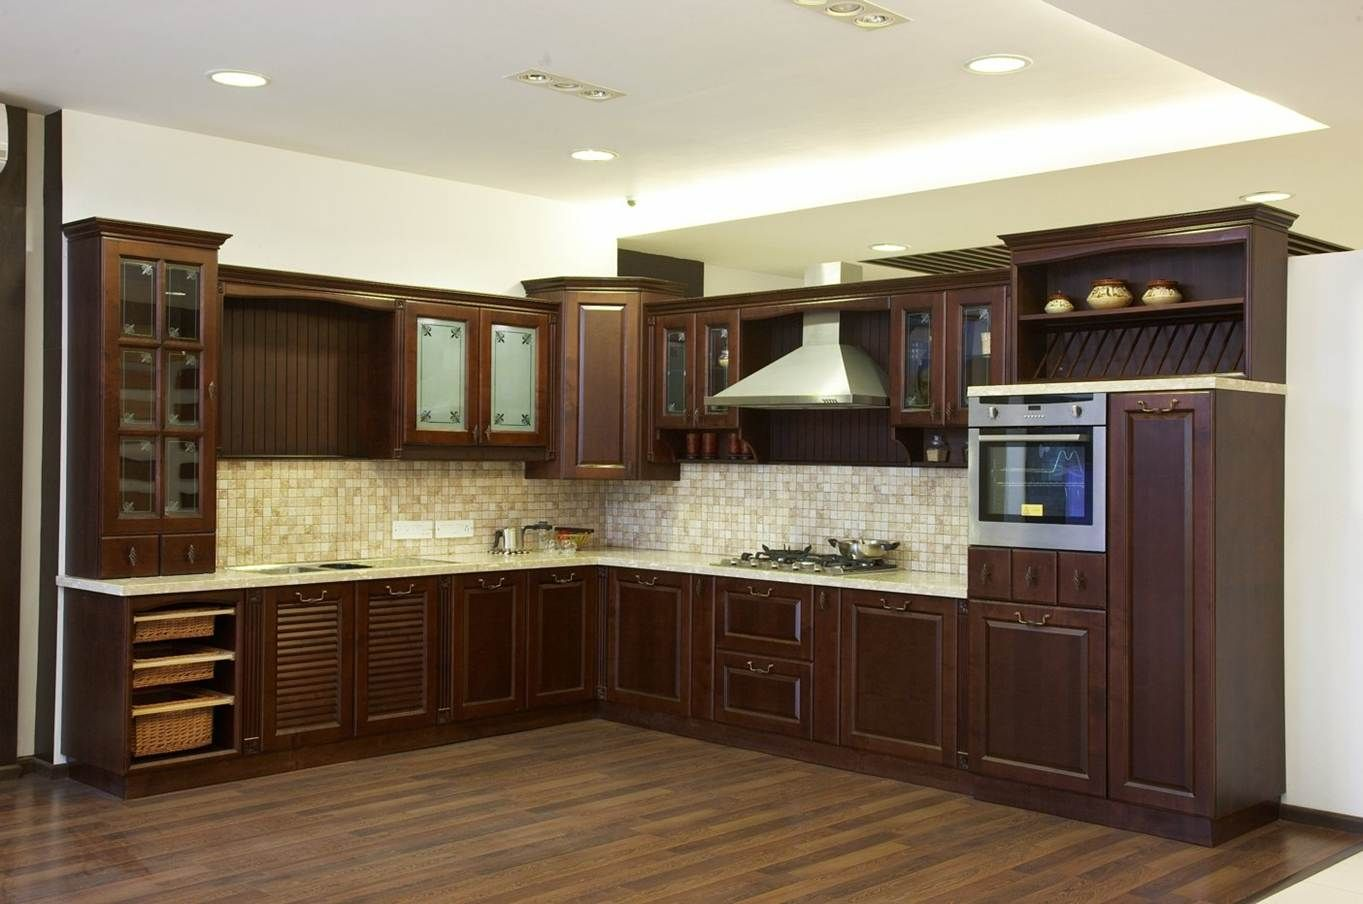 kitchen accessories design%0A Give a perfect makeover to your using kitchen fittings and accessories  The  storage solutions of our innovative will help you organize your kitchen